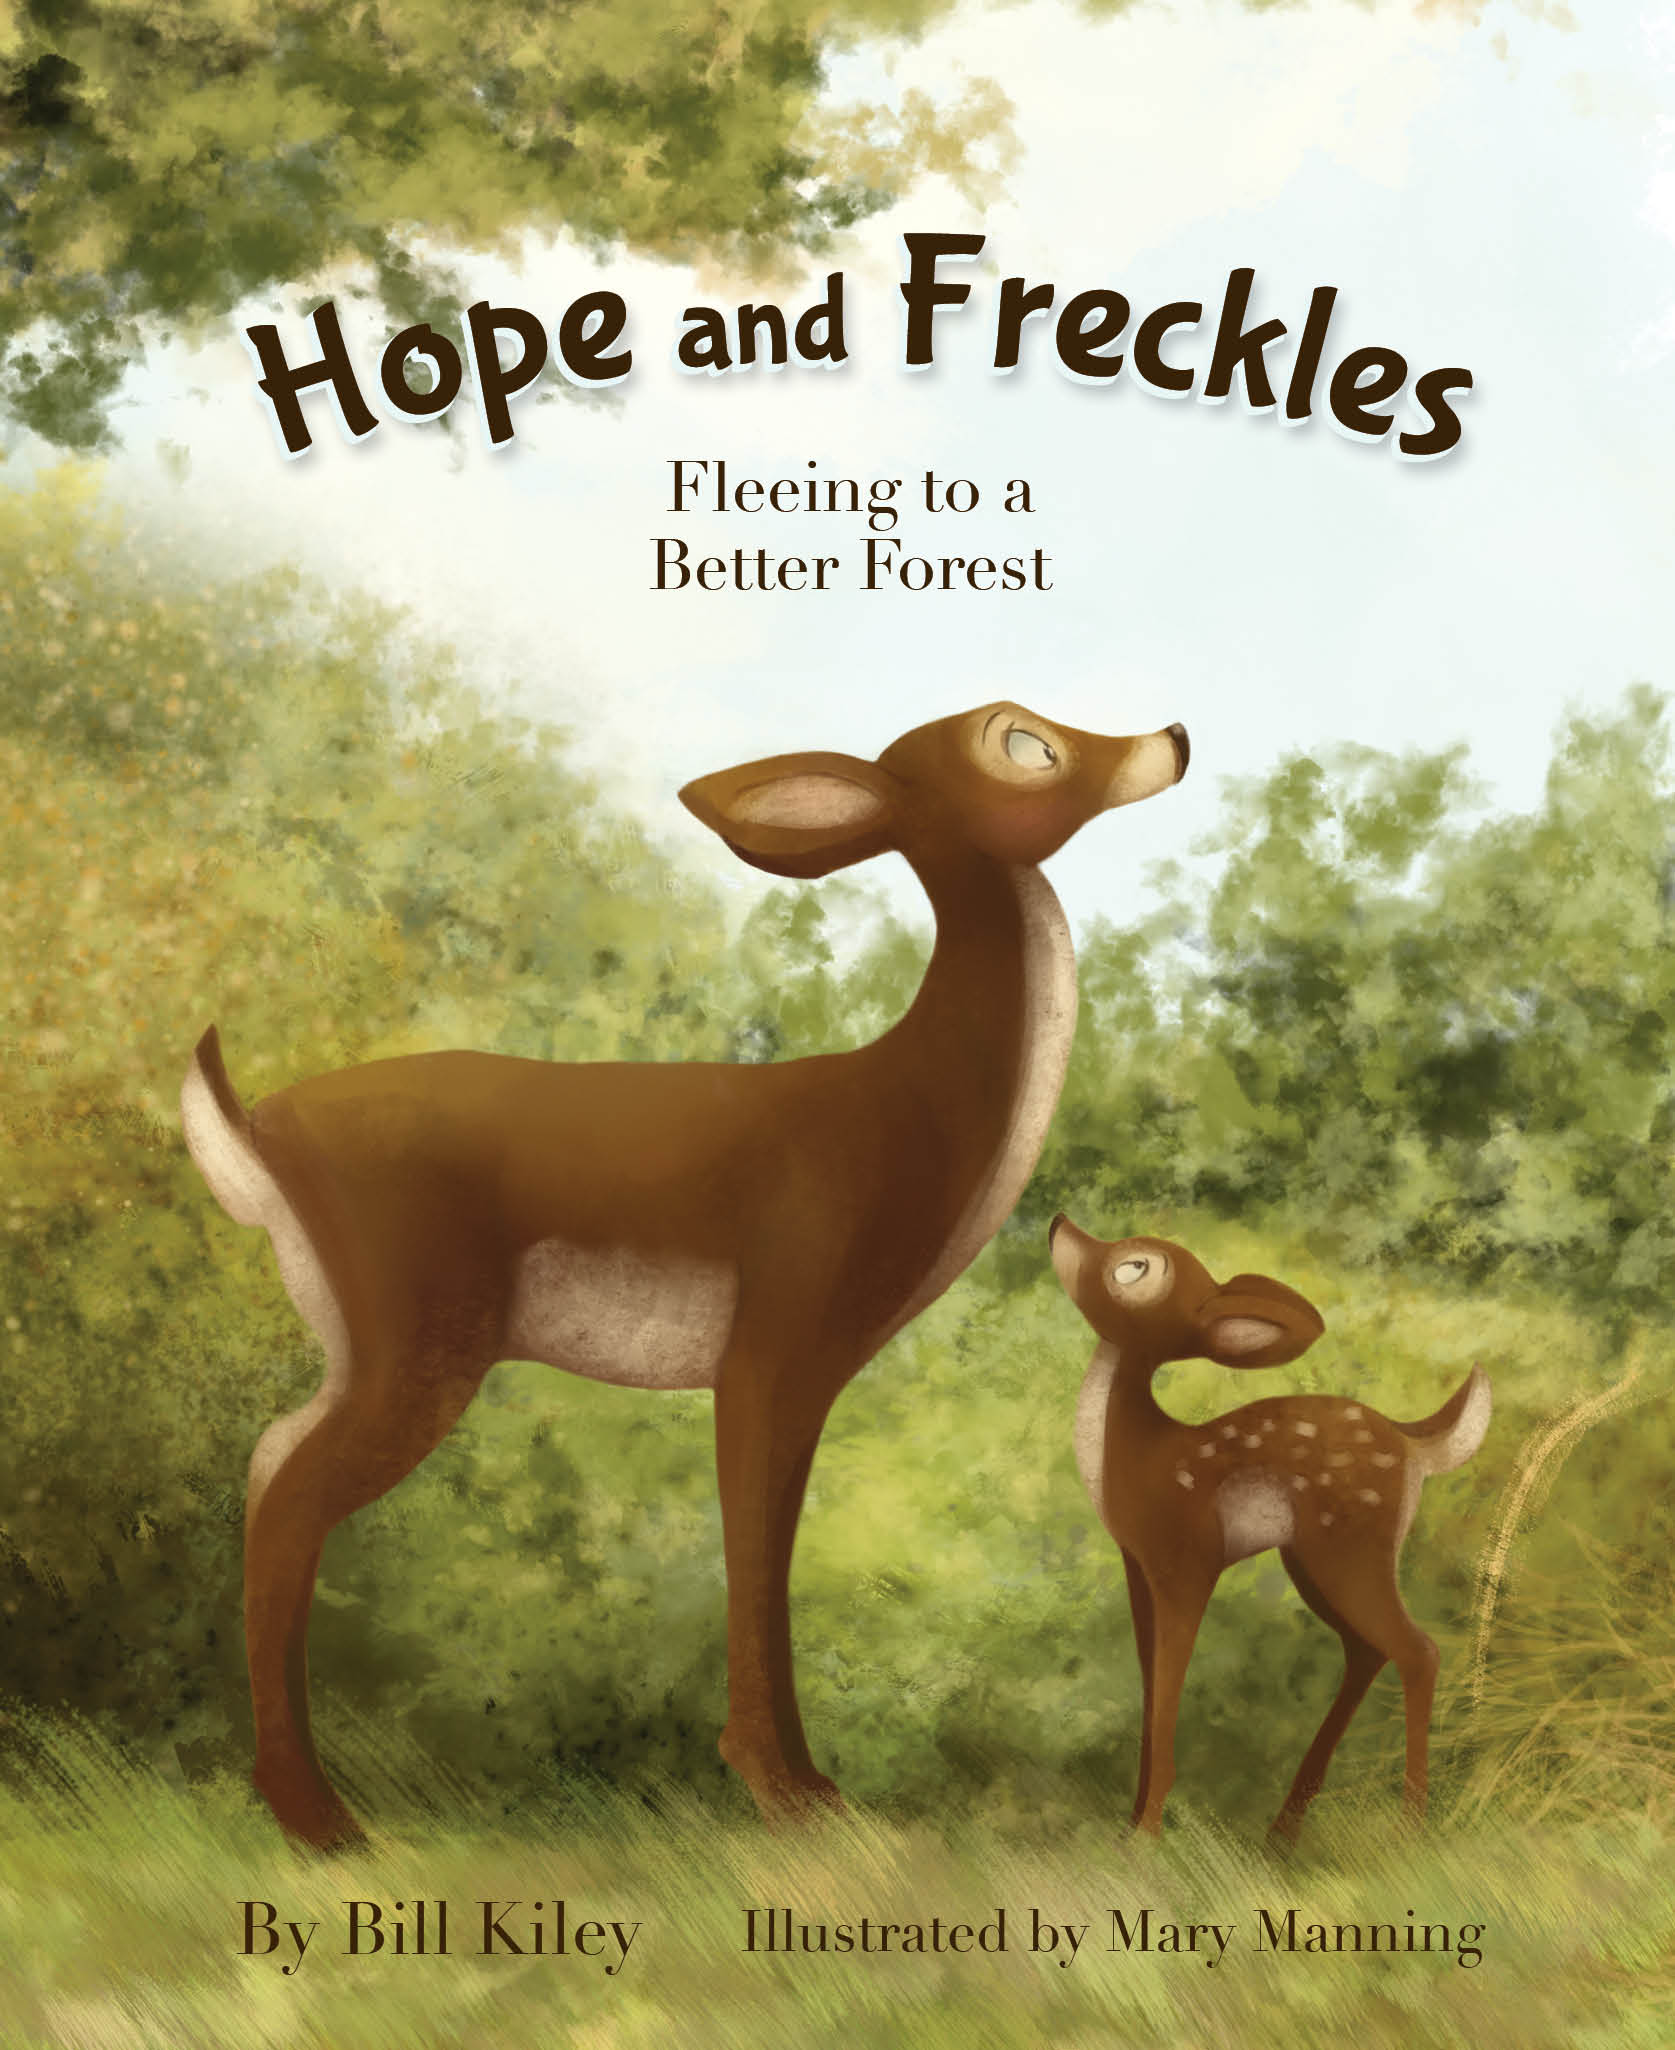 HopeandFreckles_Cover